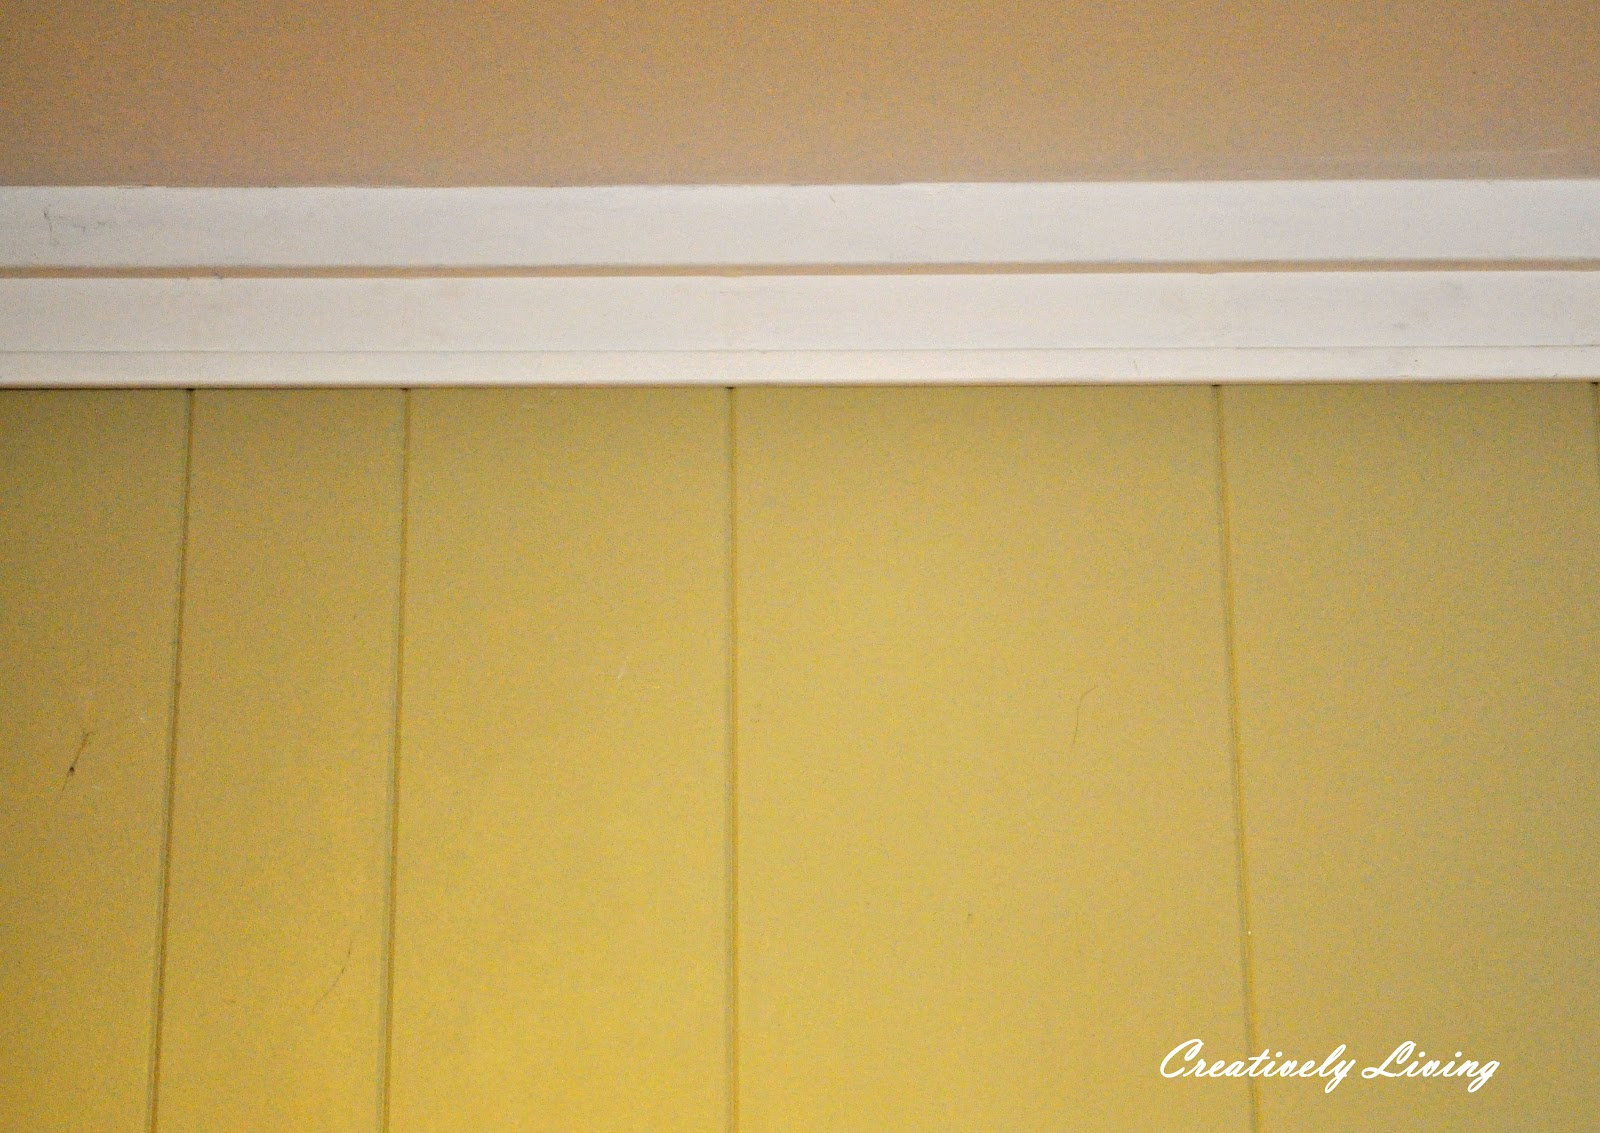 Faux Molding And Painting For Wood Paneling Under 30 Cents Ft With The Kid 39 S Wednesday